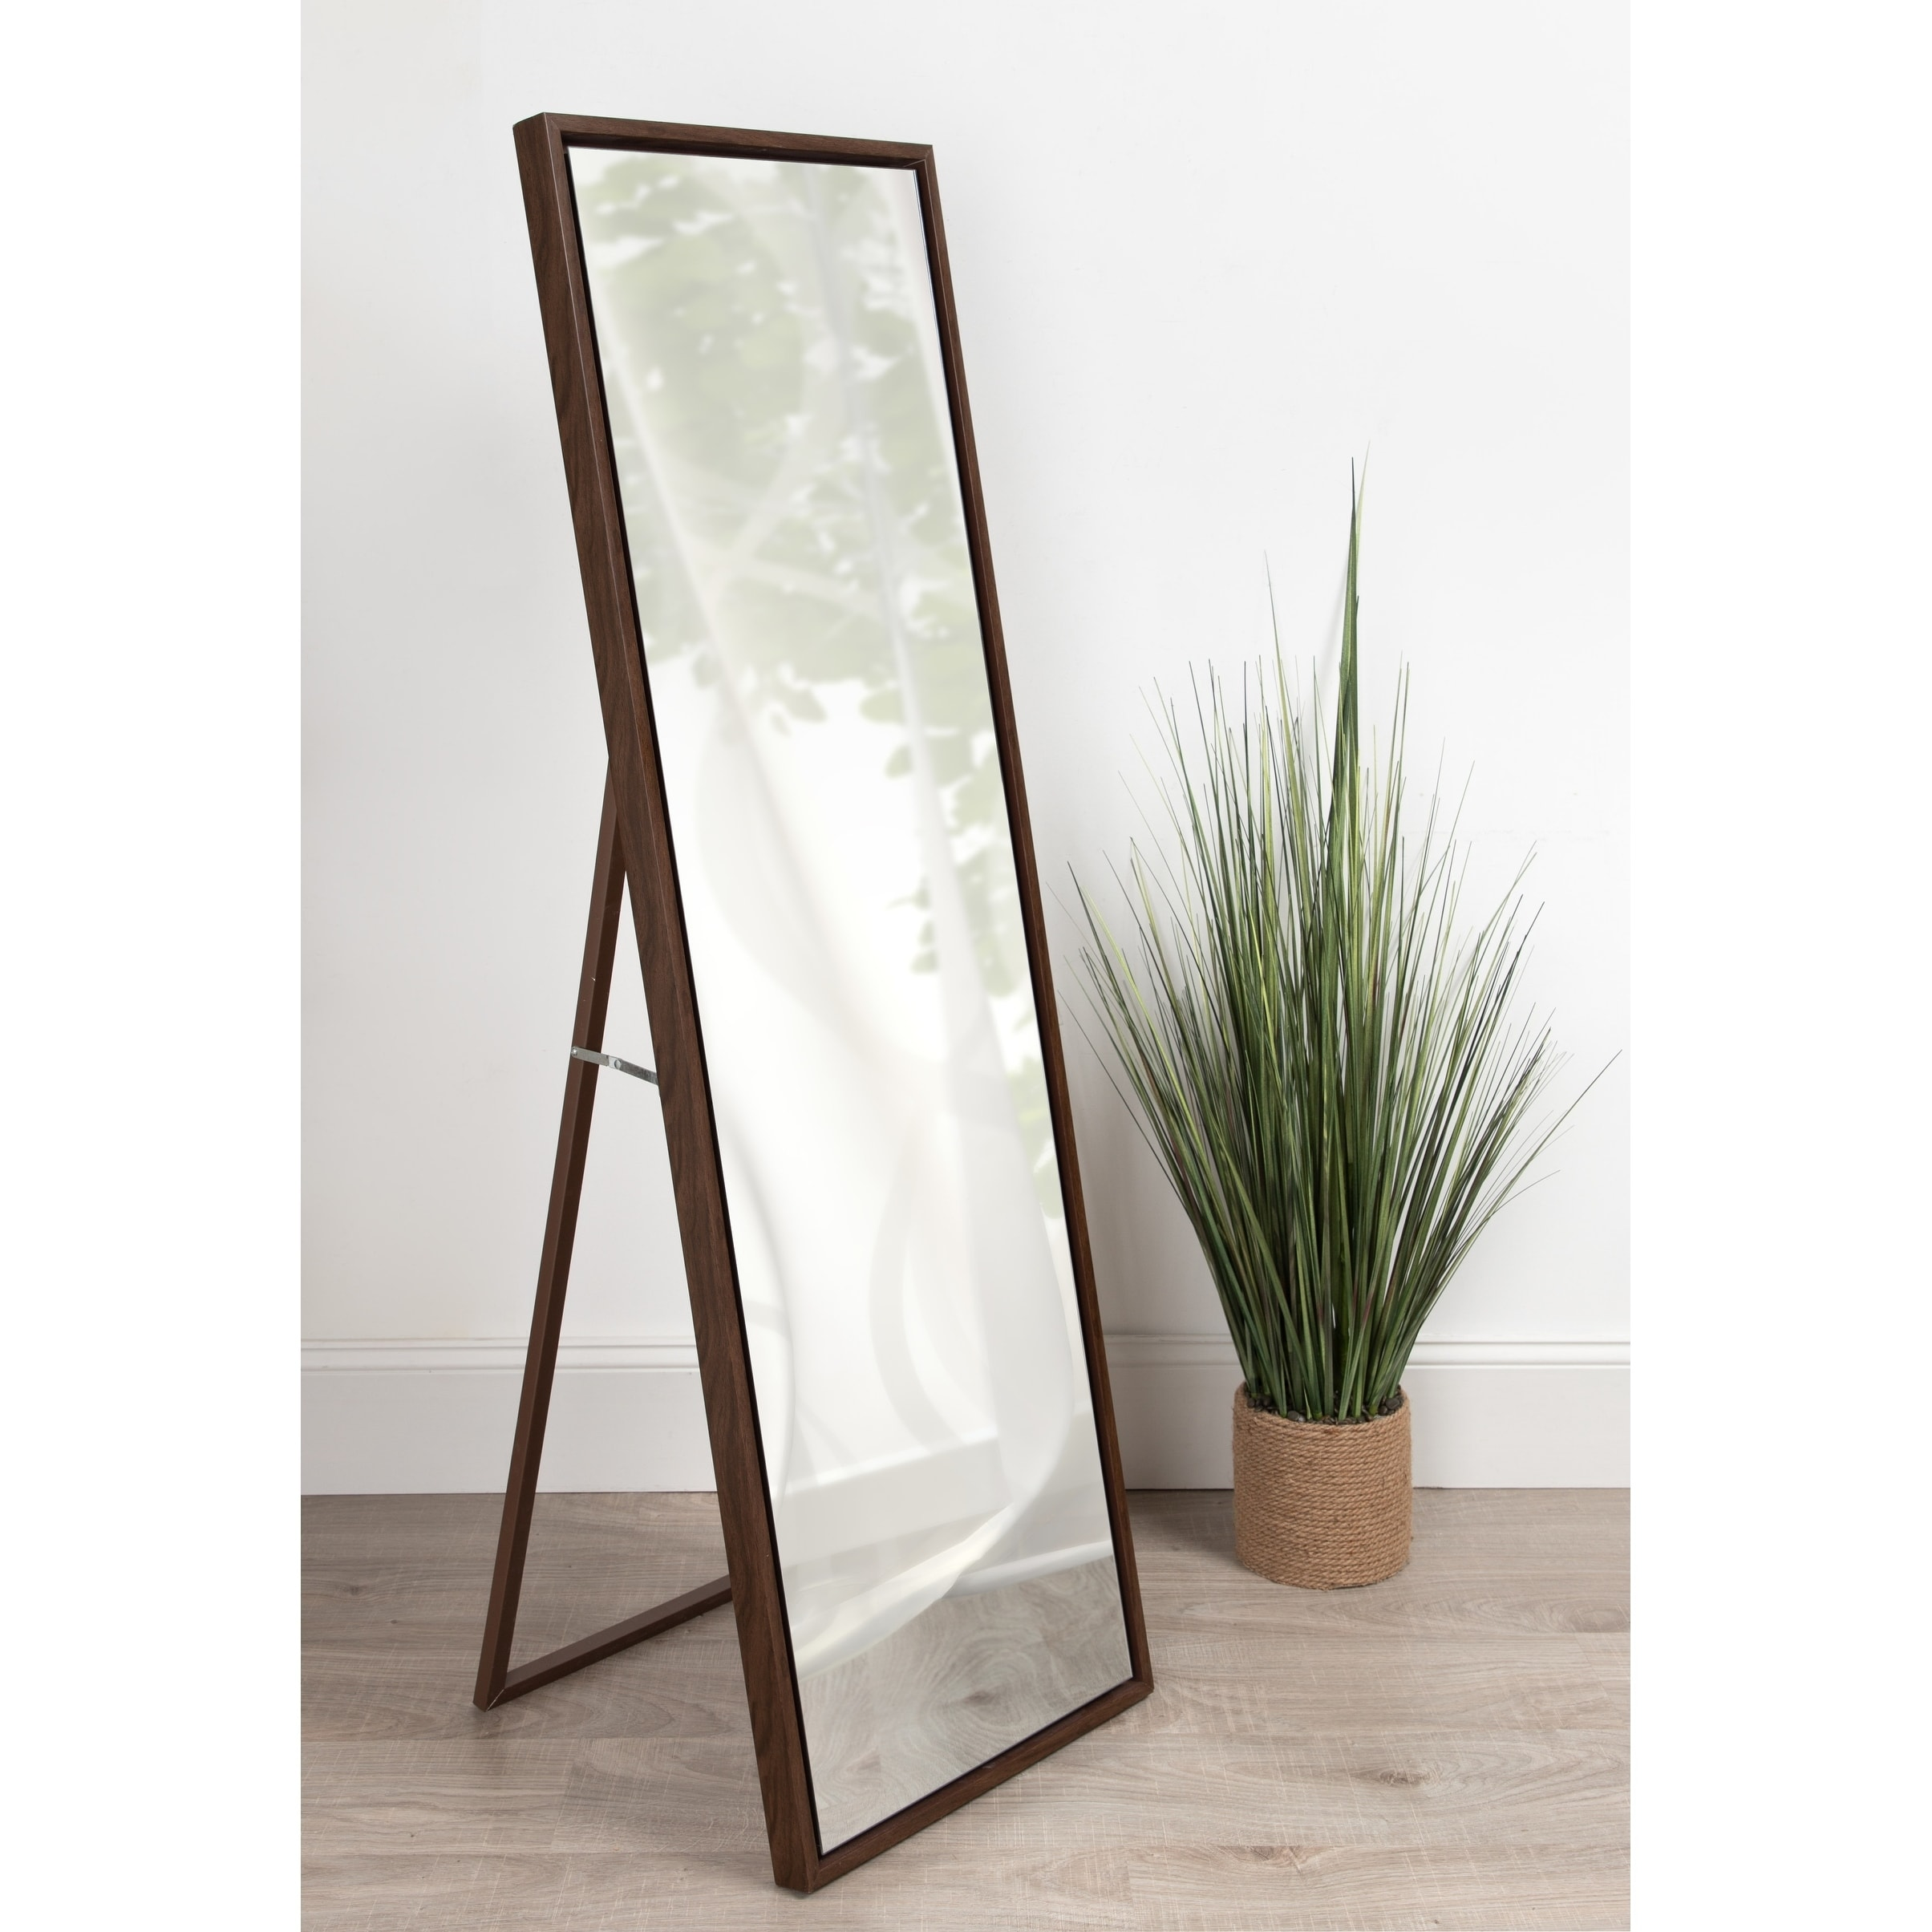 Standing Mirror Kate And Laurel Evans Wood Framed Free Standing Mirror With Easel 18x58